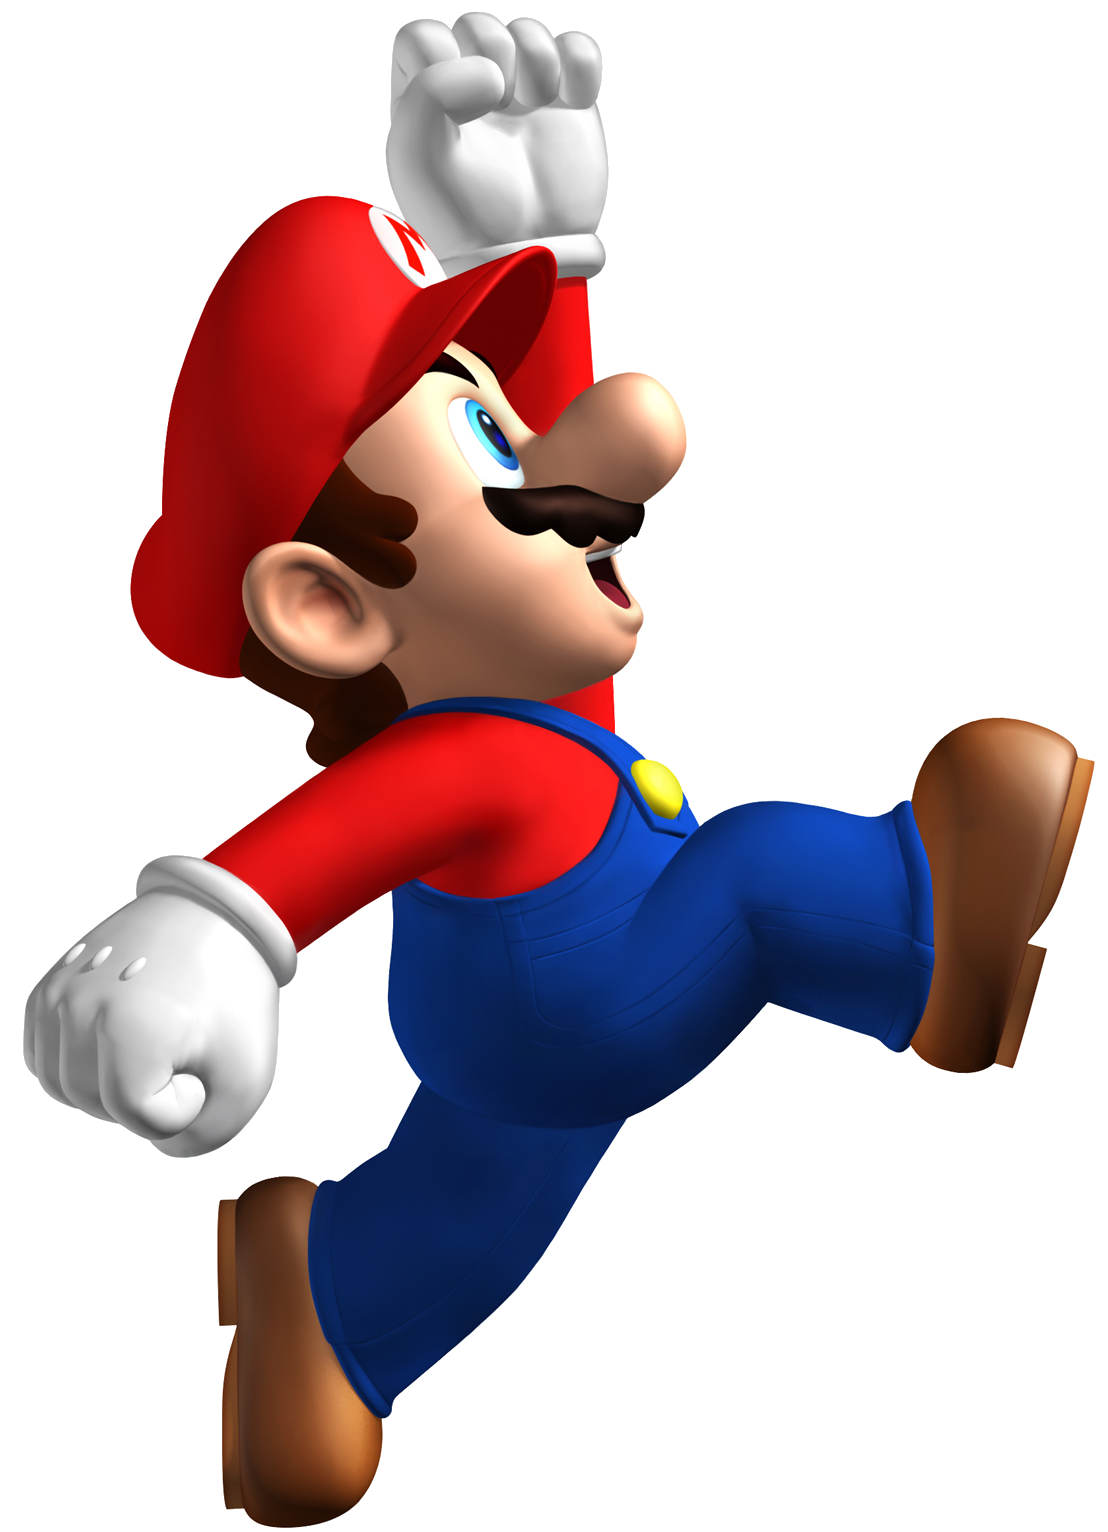 image mario artwork new super mario bros mariowiki fandom powered wikia #28326